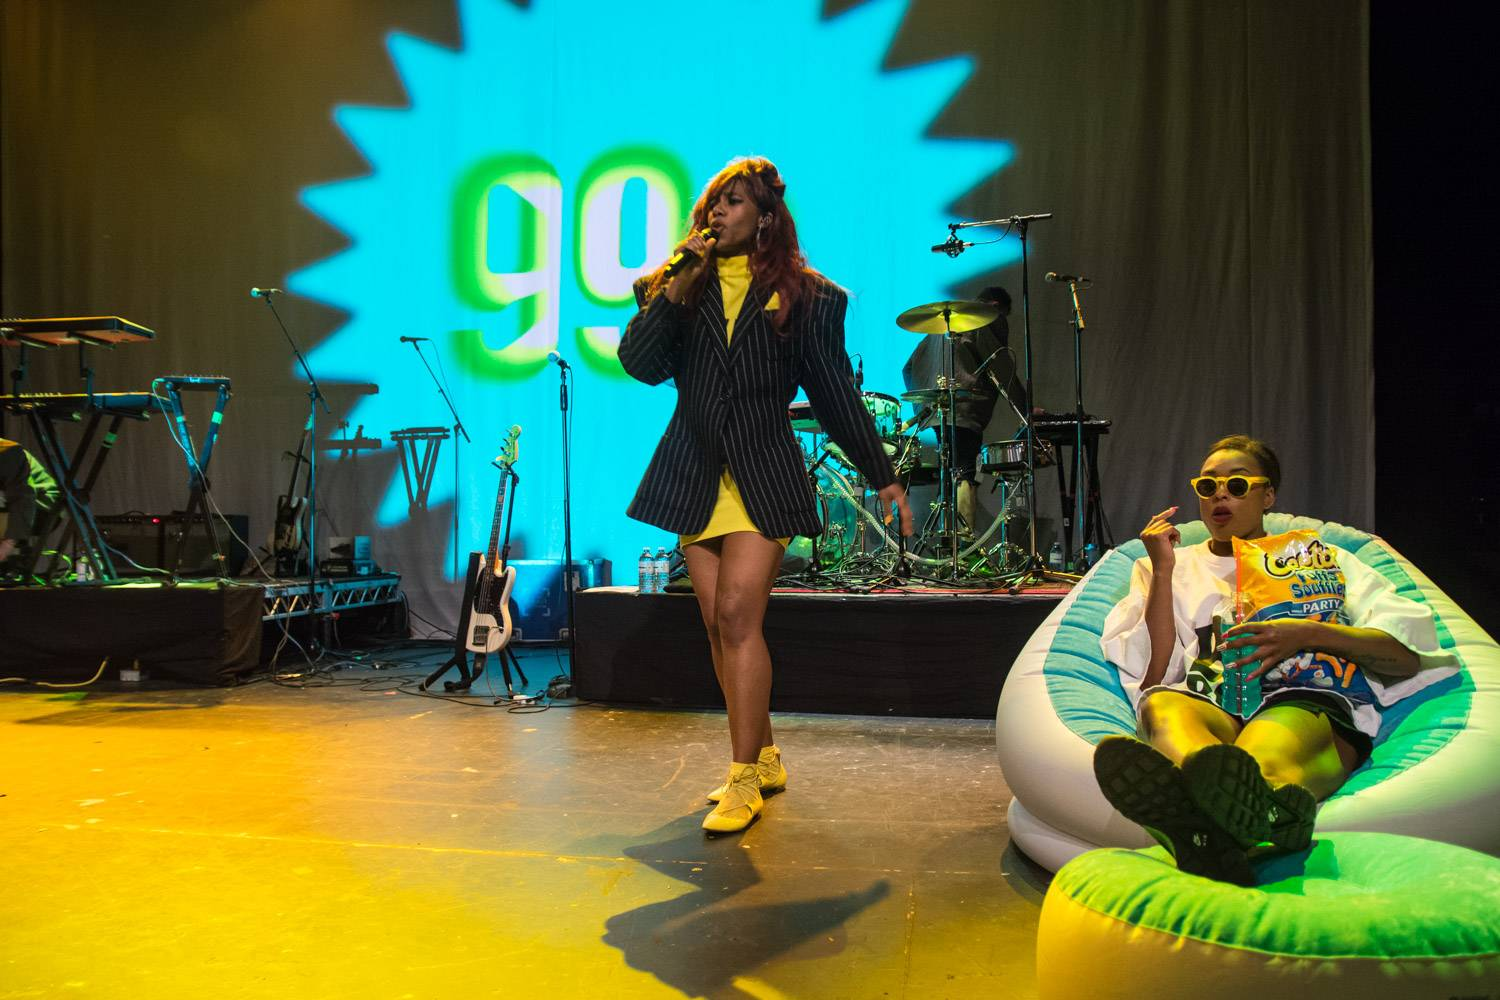 Santigold at the Vogue Theatre, Vancouver, May 12 2016. Pavel Boiko photo.